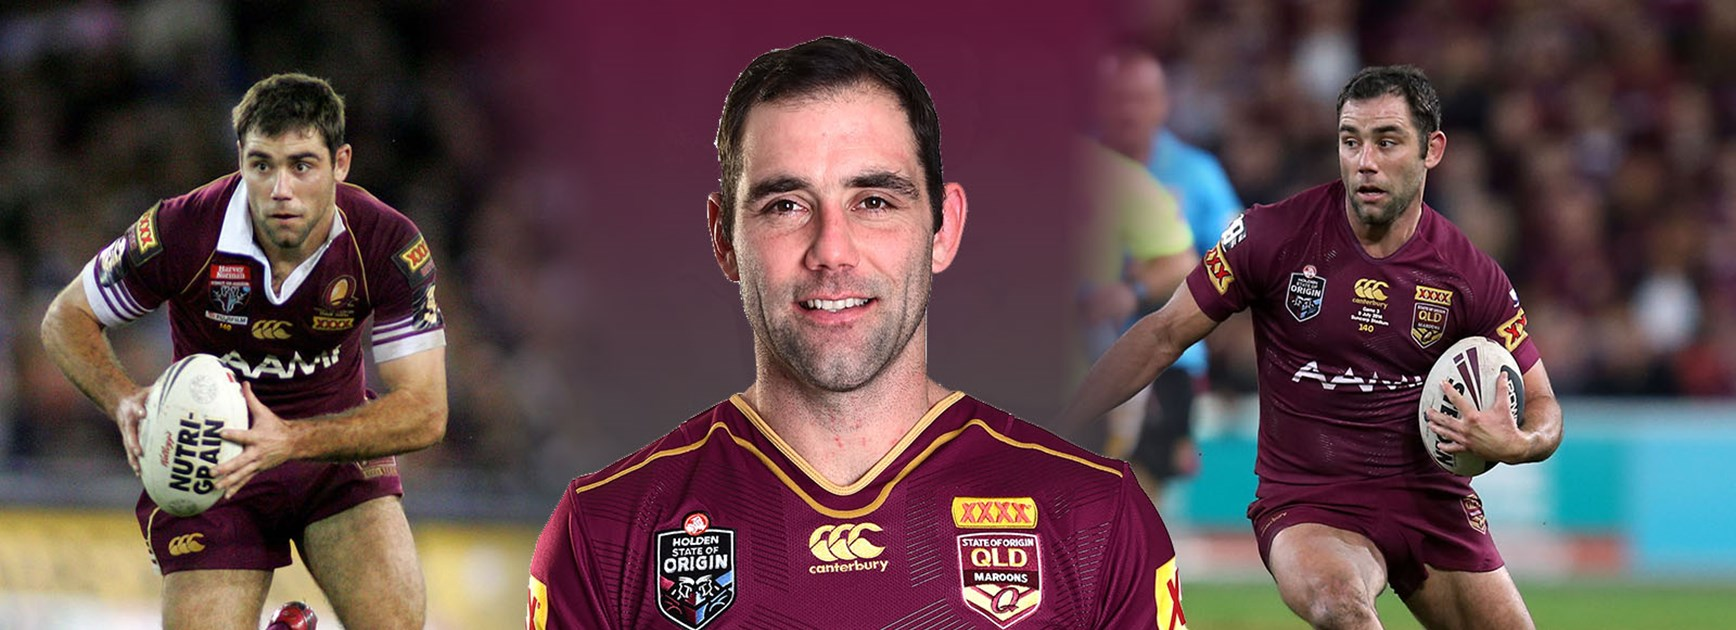 Cam Smith is about to break the all-time Origin appearance record. On debut (left) and during 2015 series (right).